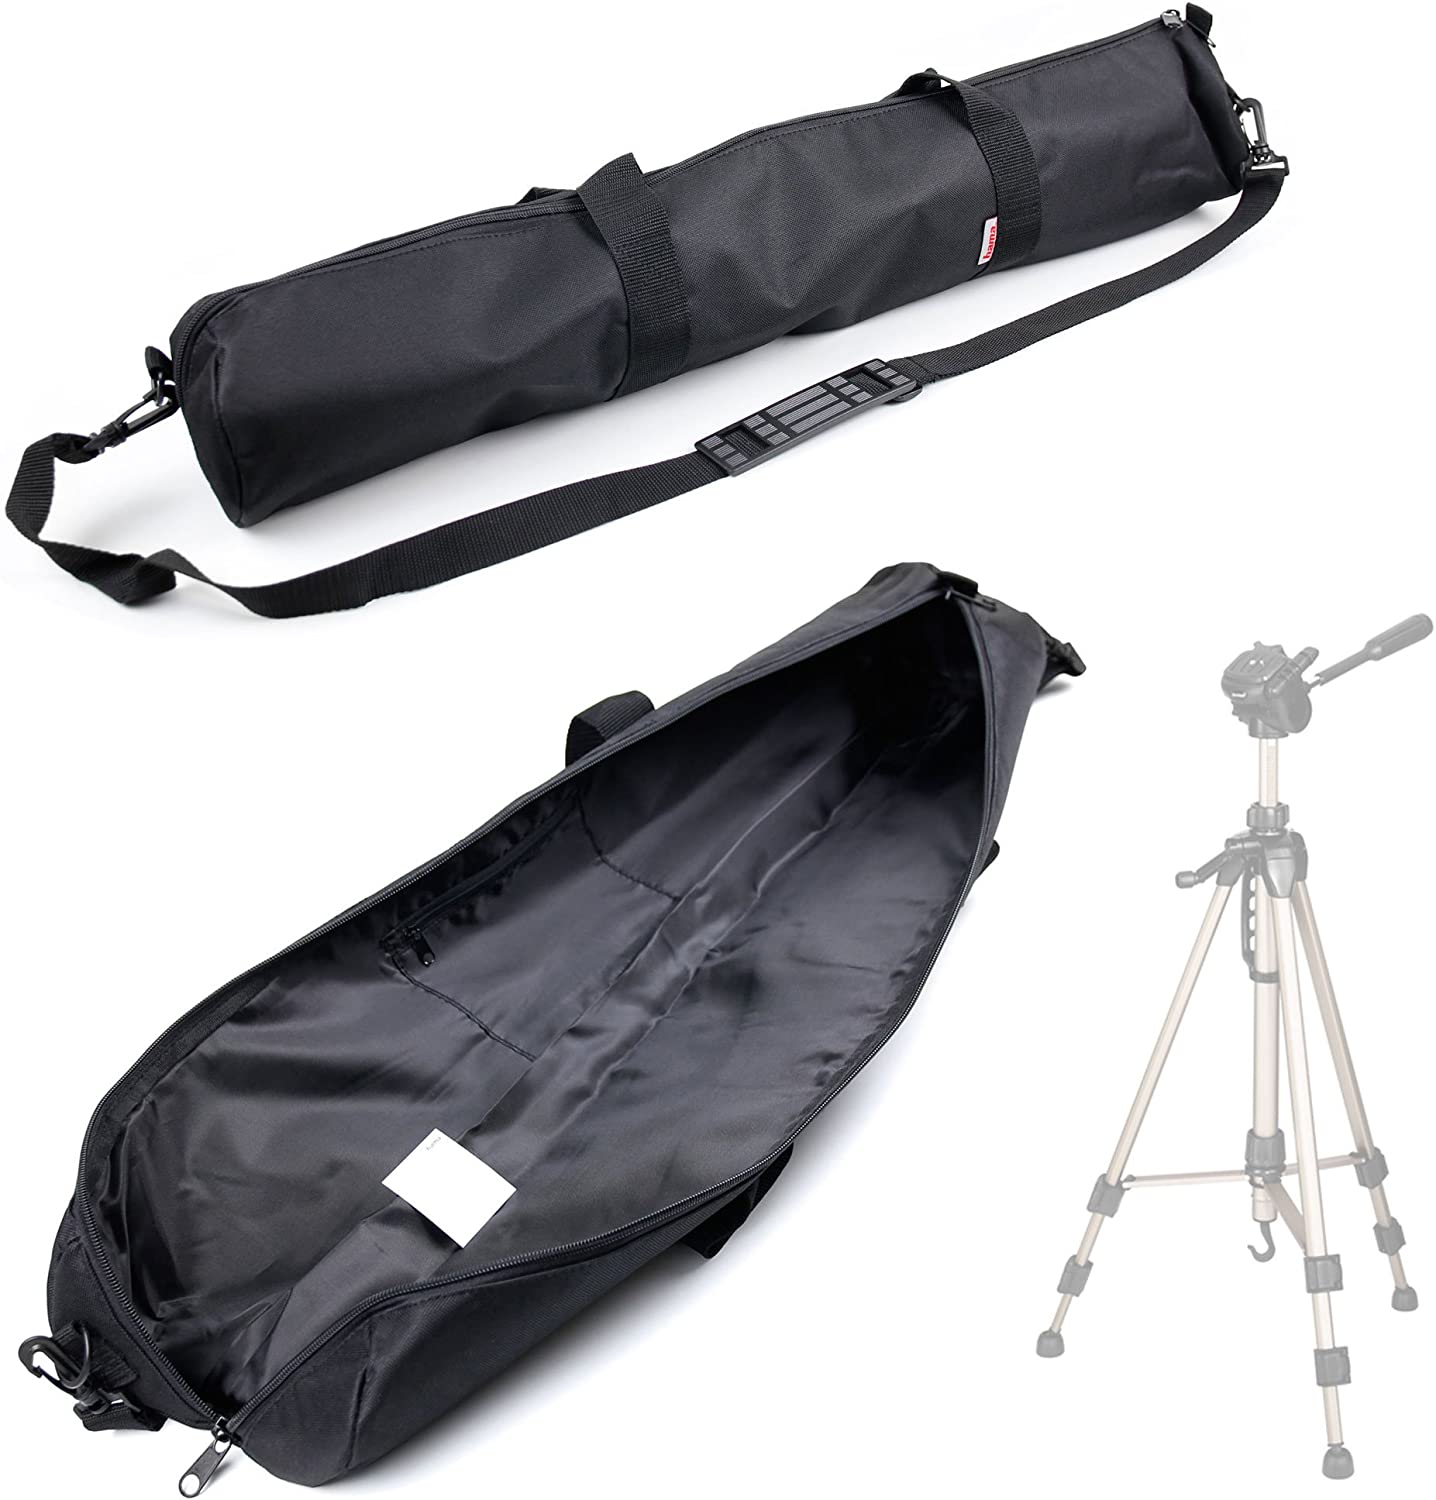 DURAGADGET Premium Quality Water-Resistant Tripod Carry Bag//Cover for Hama Star 63 62 /& 61 Tripod with Removable /& Adjustable Shoulder Strap and Separate Carry Handles